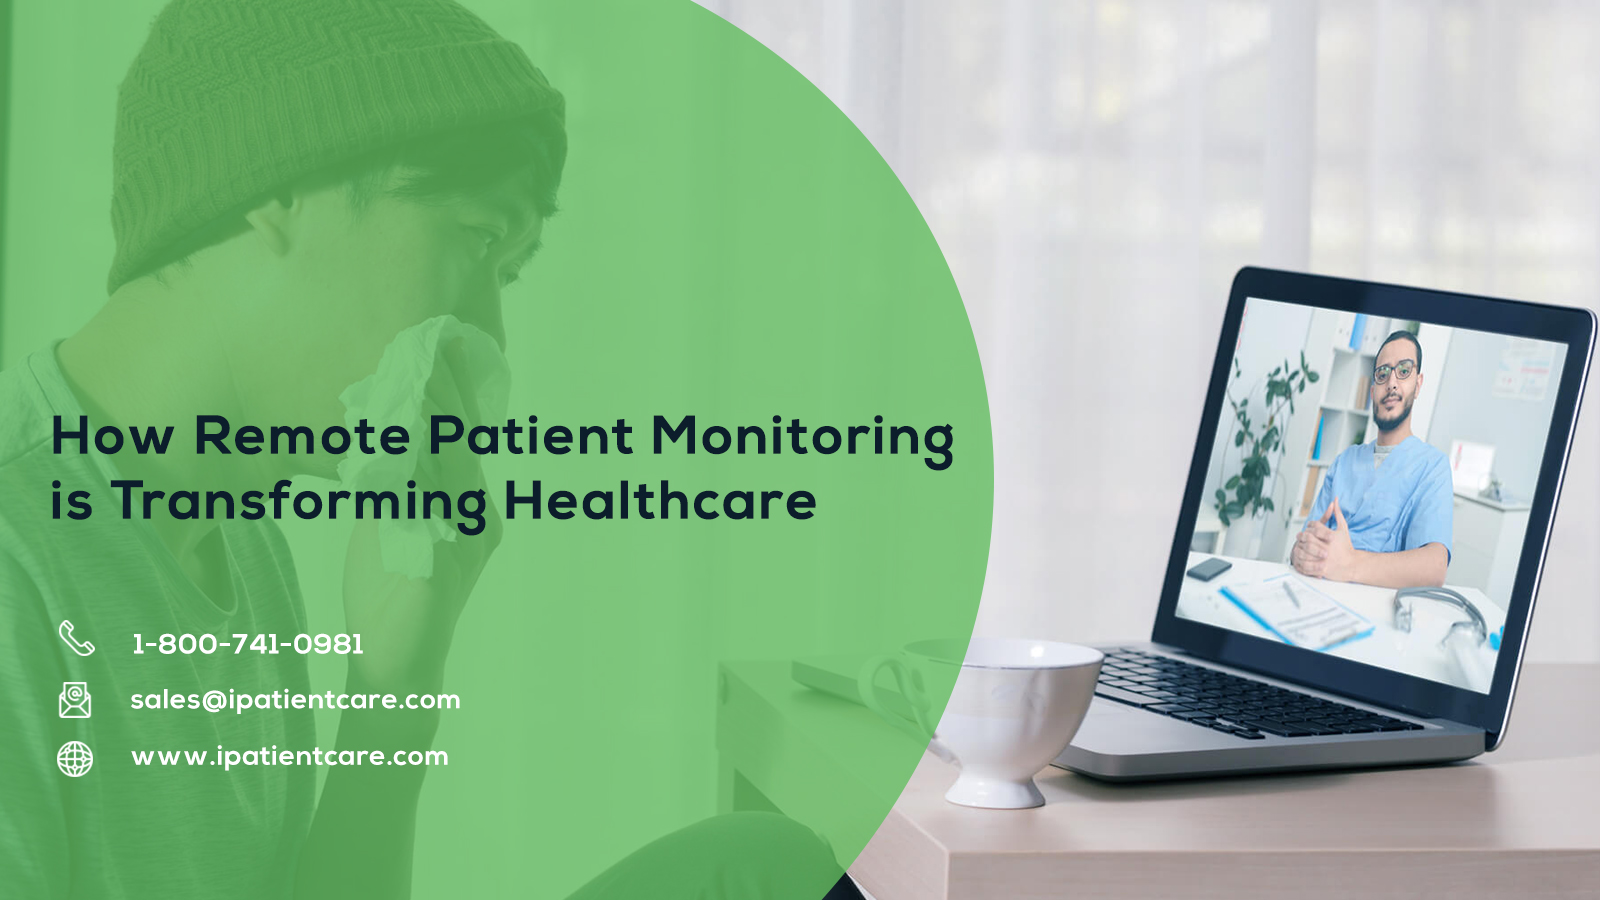 Remote Patient Monitoring Is Transforming Healthcare